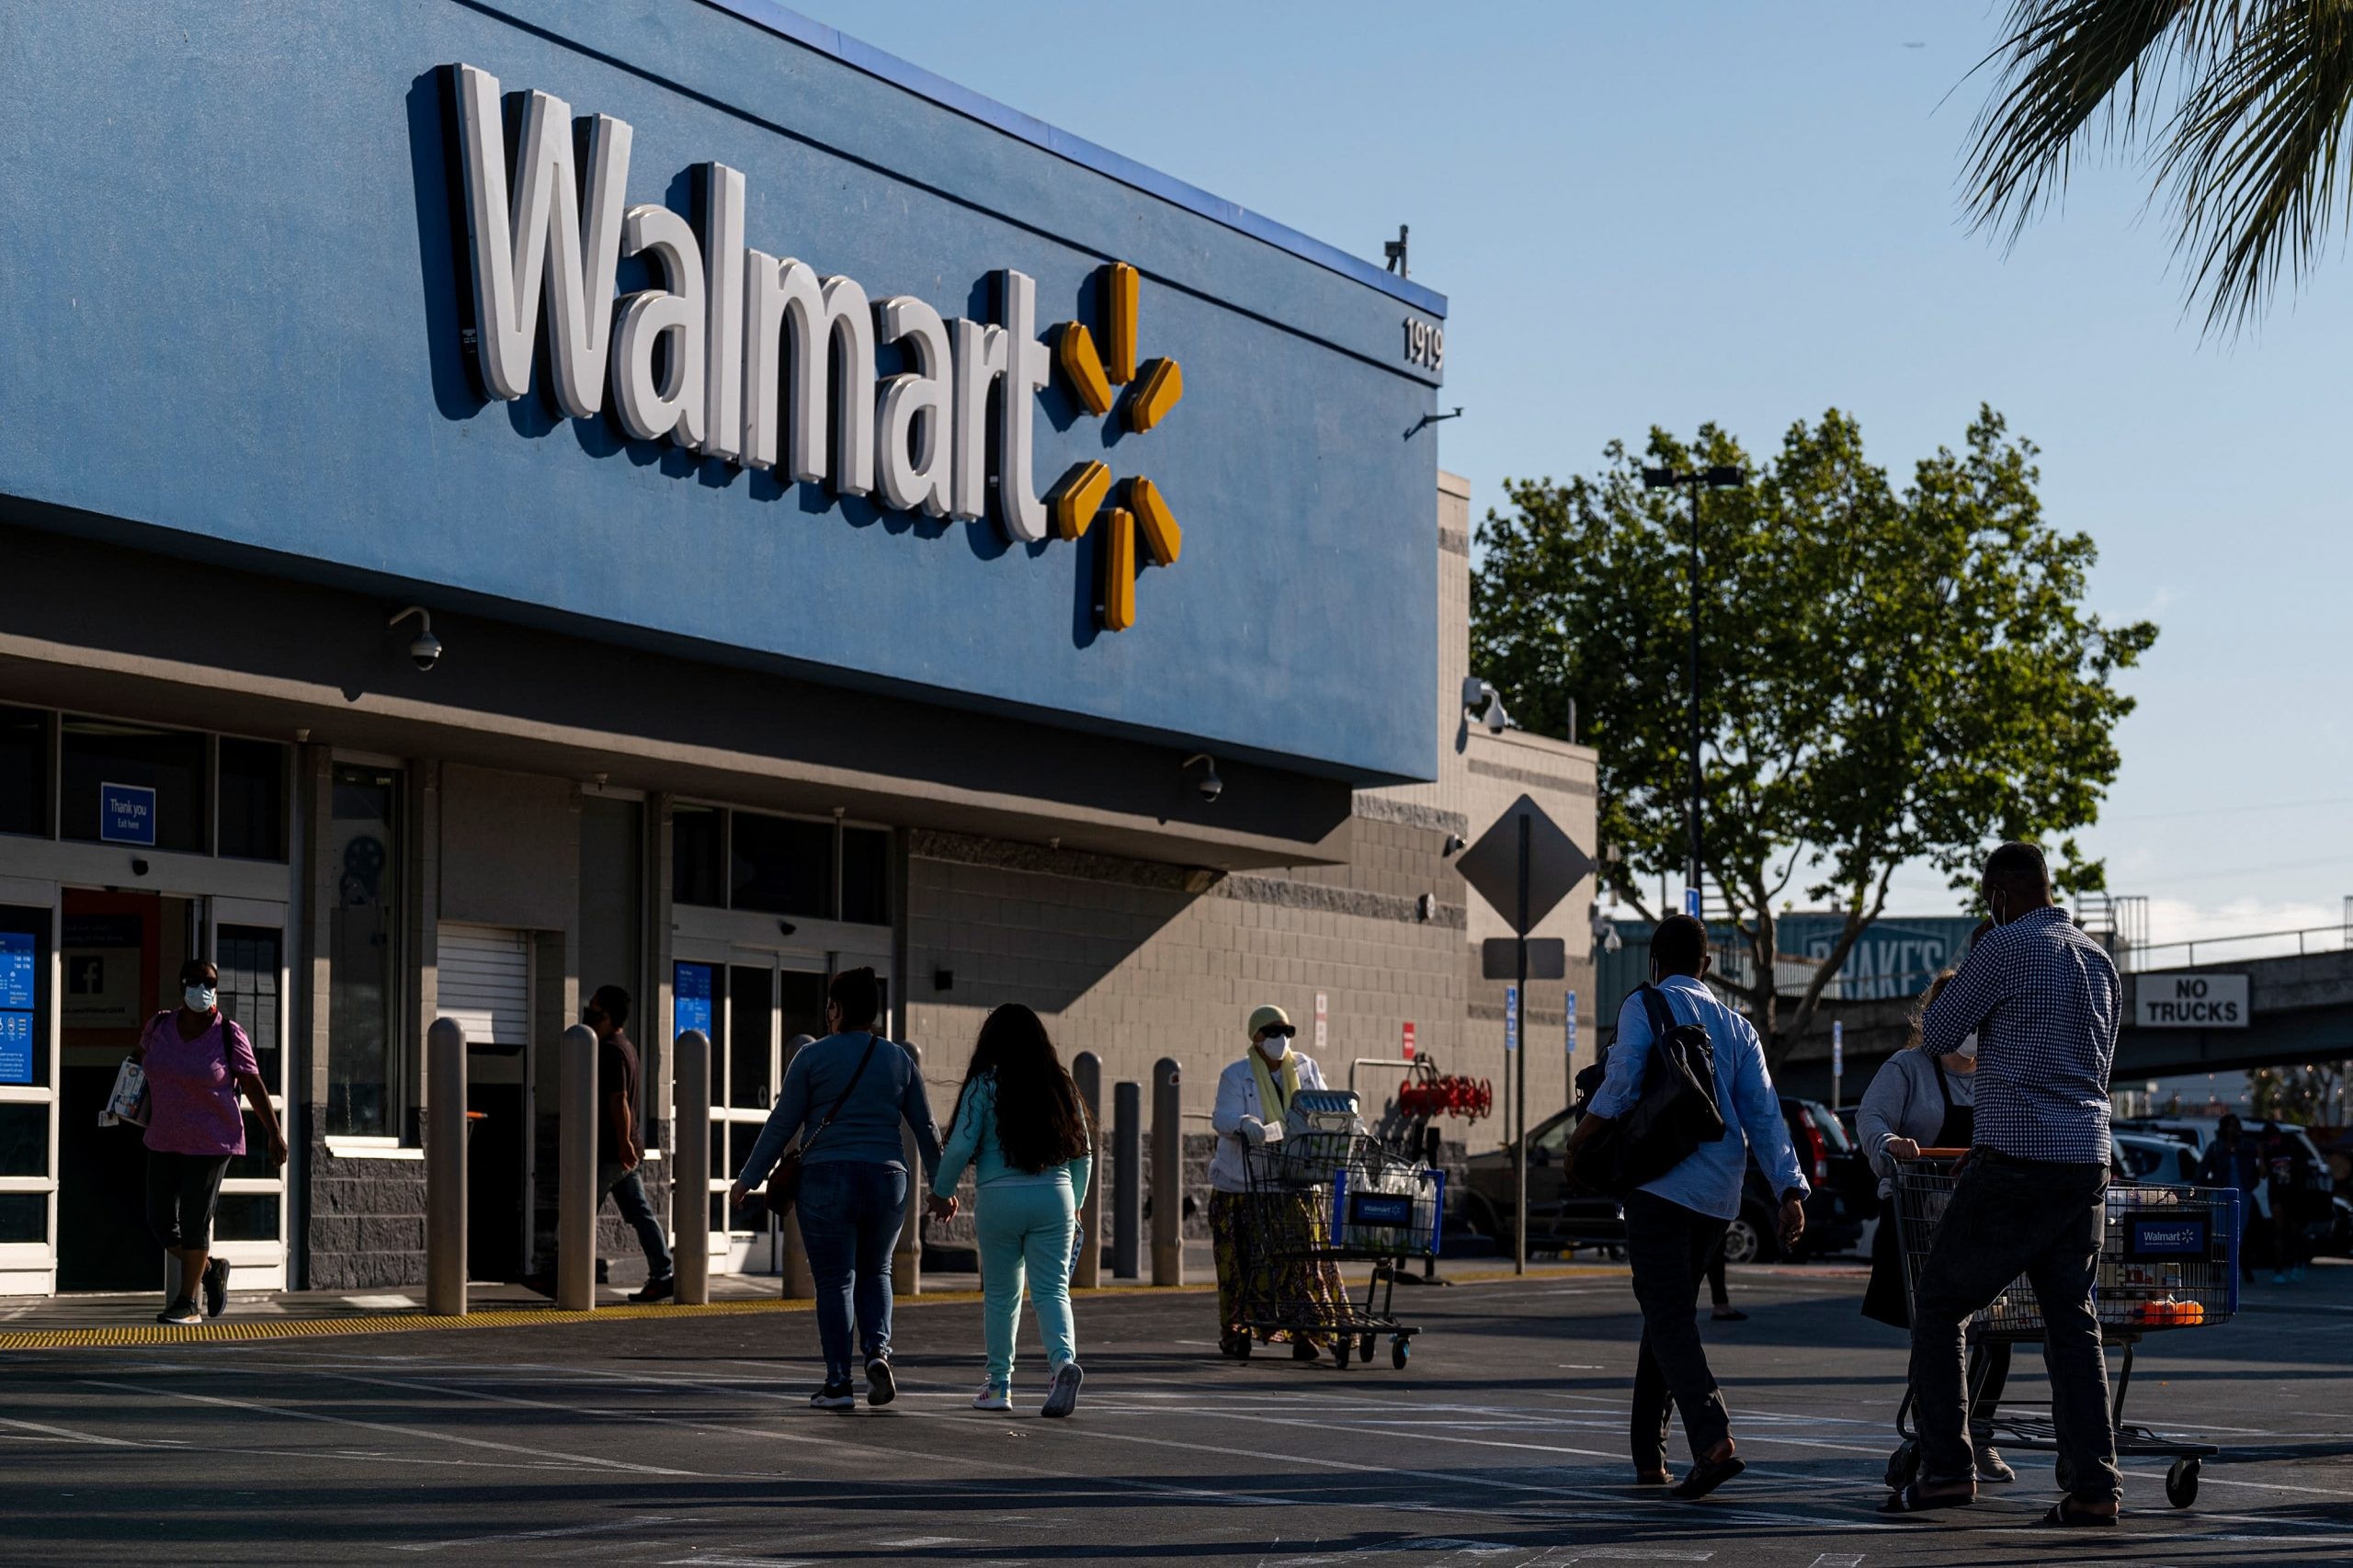 Wal-Mart Selles E-Commerce Technology to Small Retailers